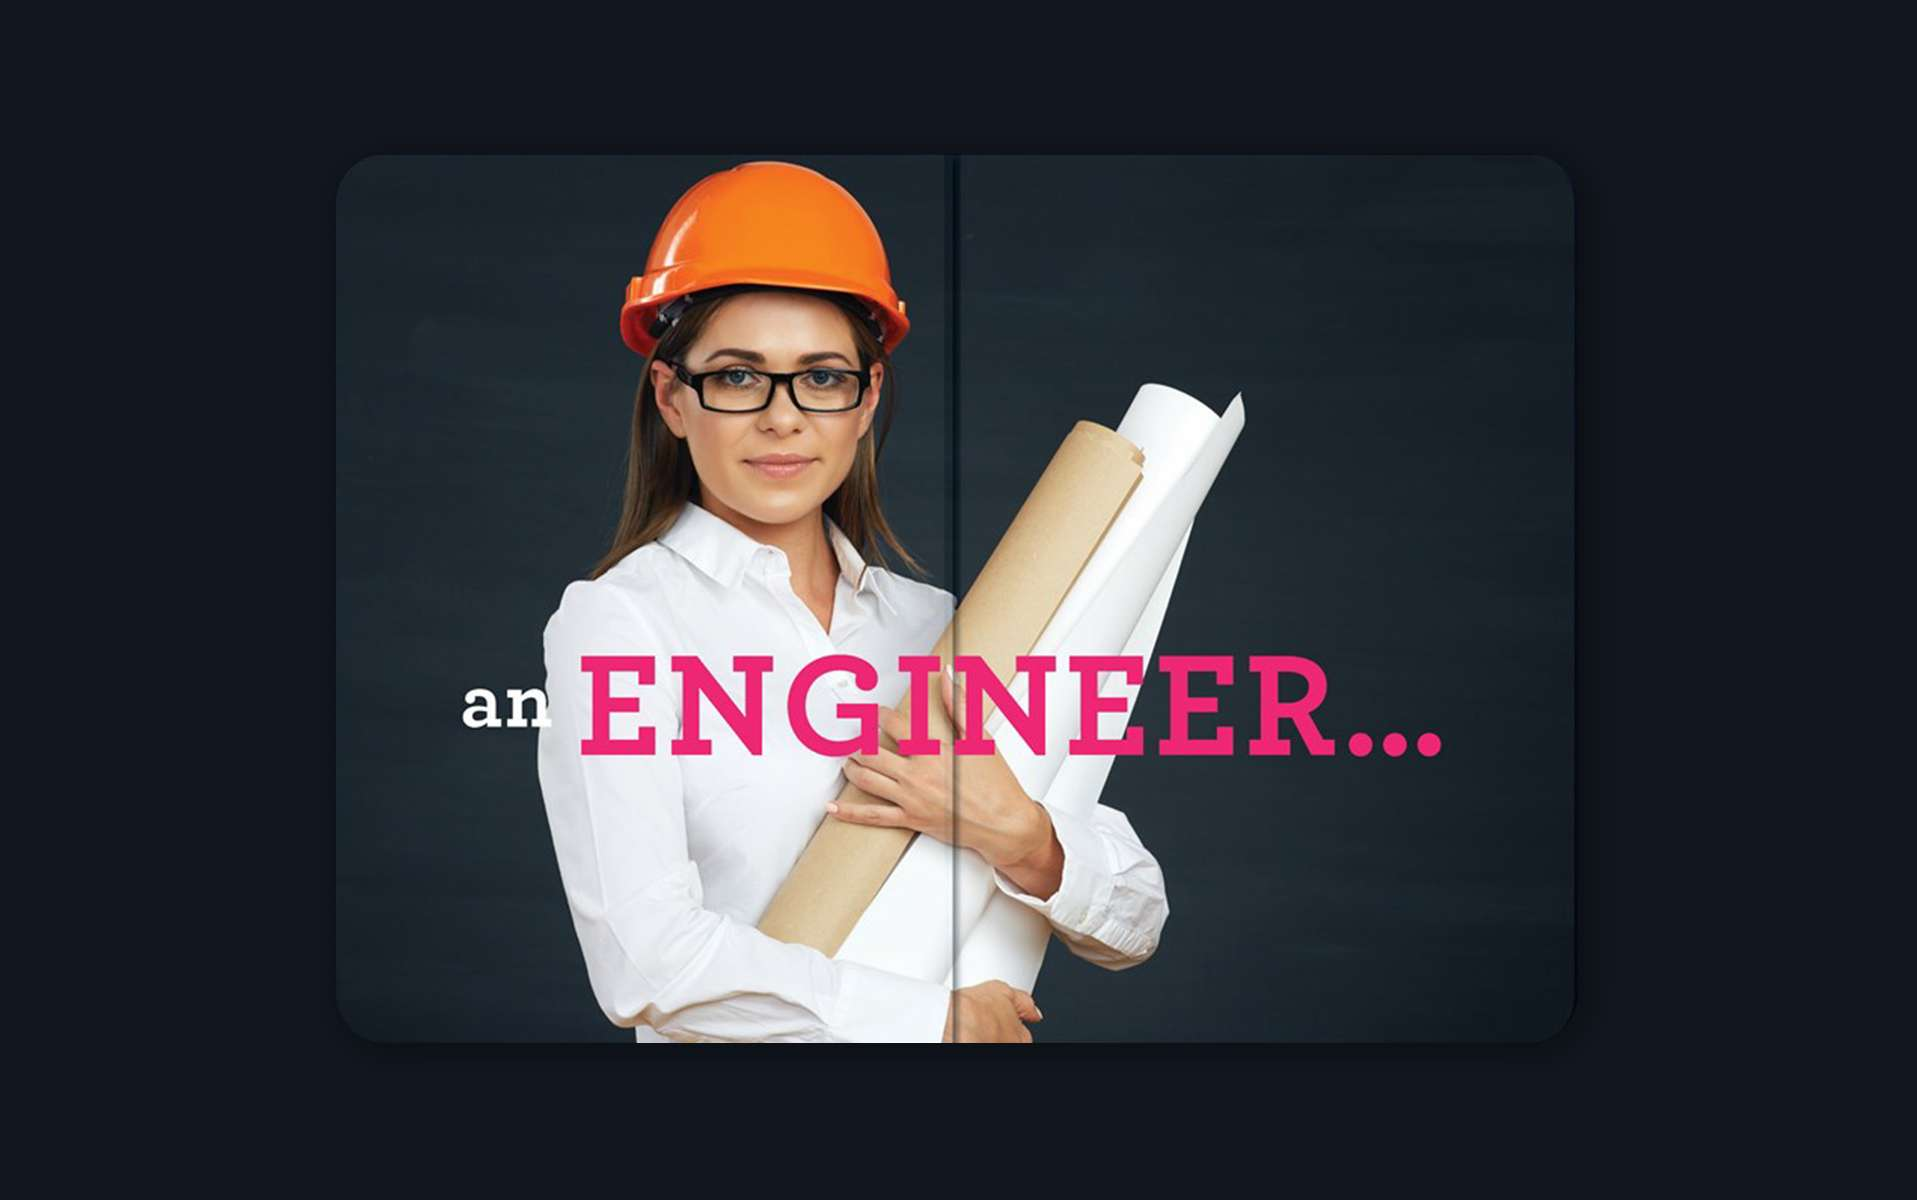 An Engineer. Photo of a young white woman holding blueprints, wearing a hard hat.